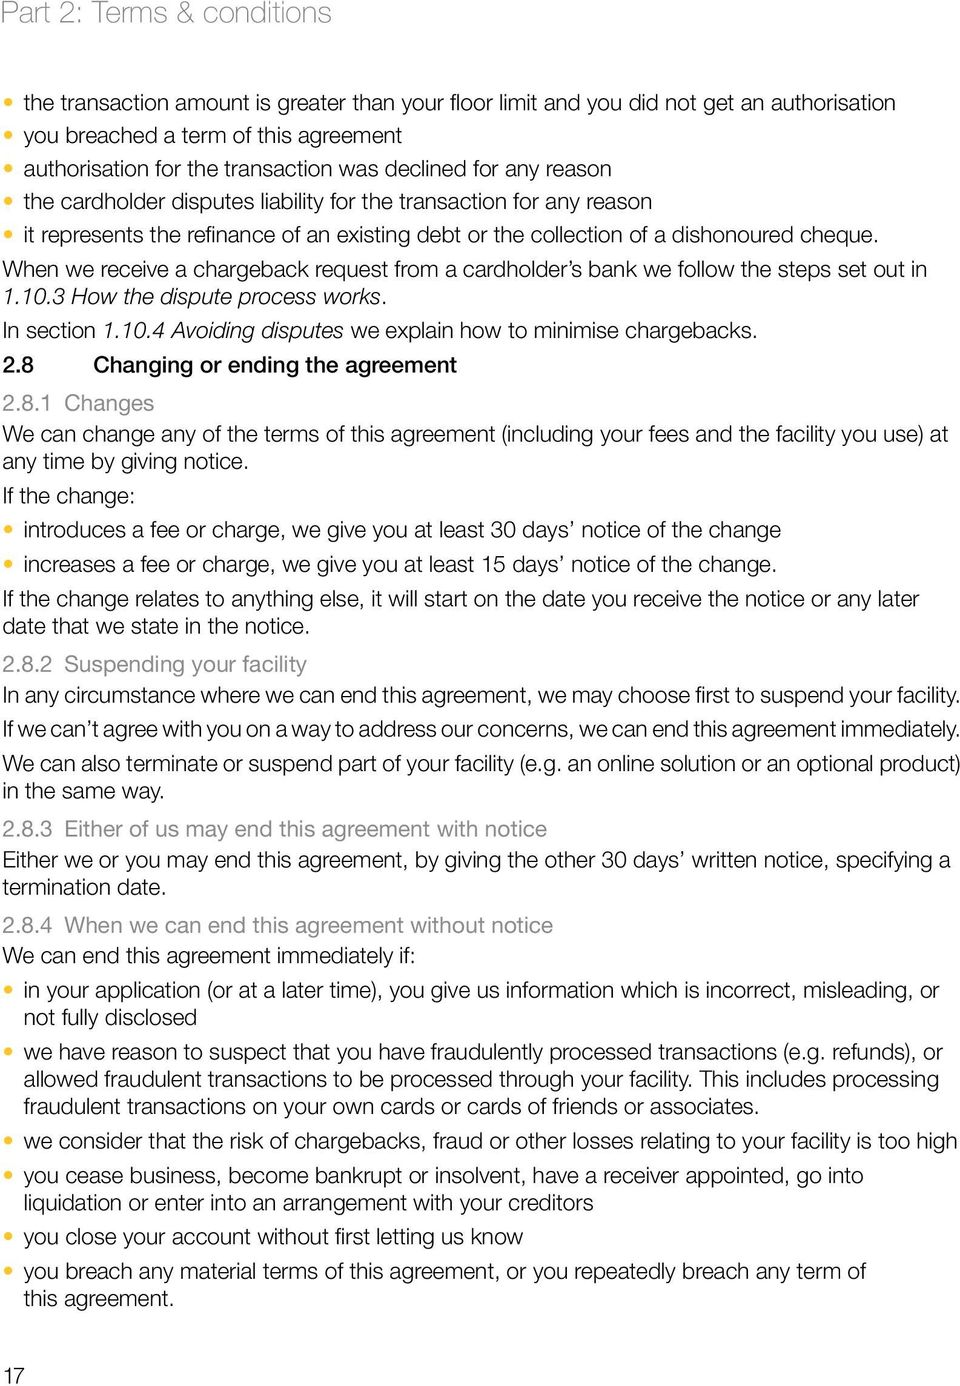 When we receive a chargeback request from a cardholder s bank we follow the steps set out in 1.10.3 How the dispute process works. In section 1.10.4 Avoiding disputes we explain how to minimise chargebacks.